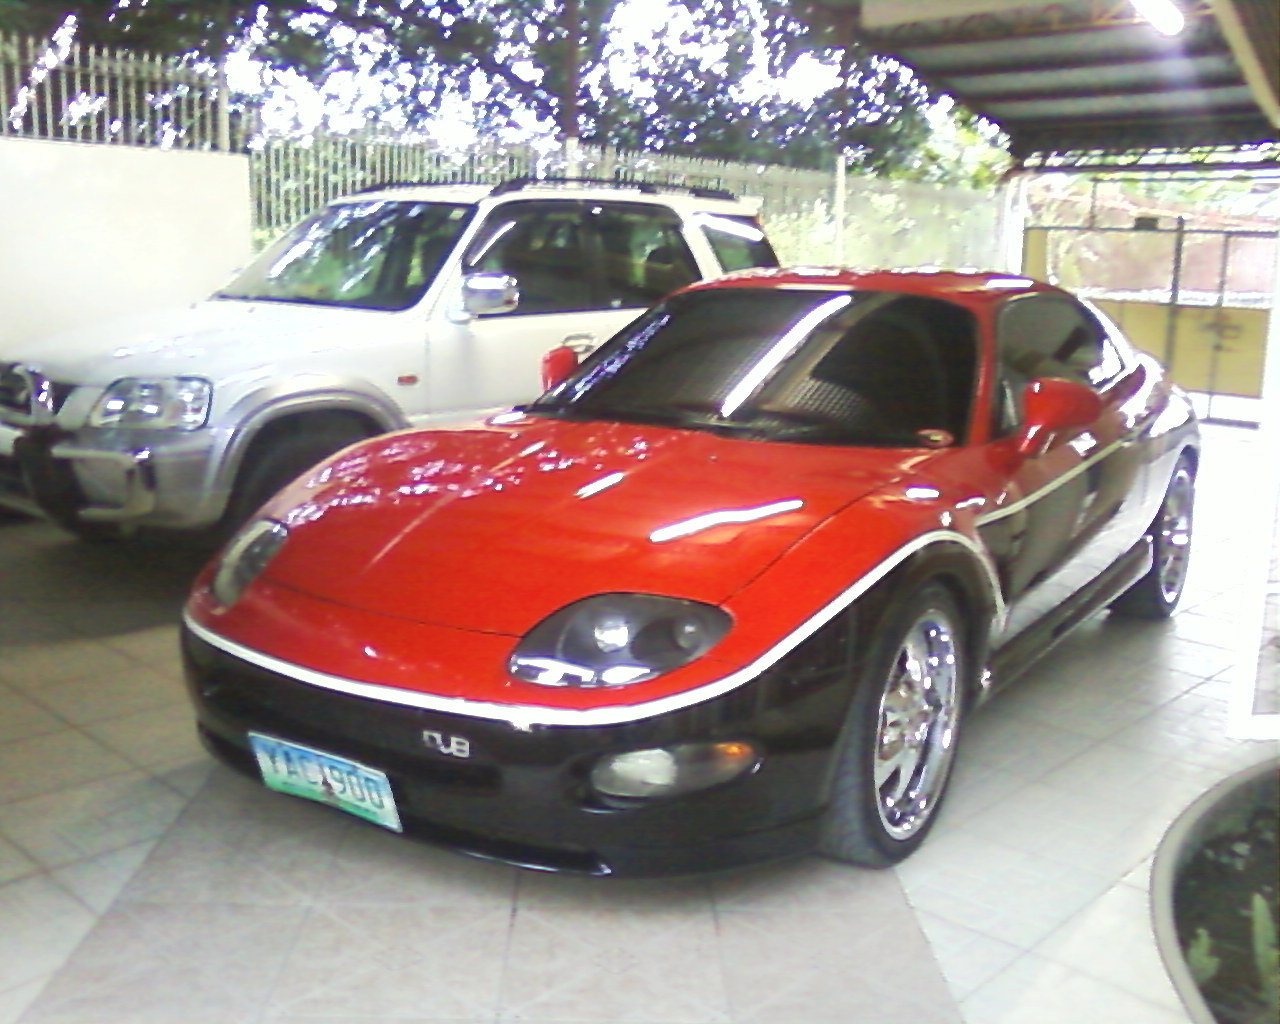 team_rebel25 2000 Mitsubishi FTO 12746525